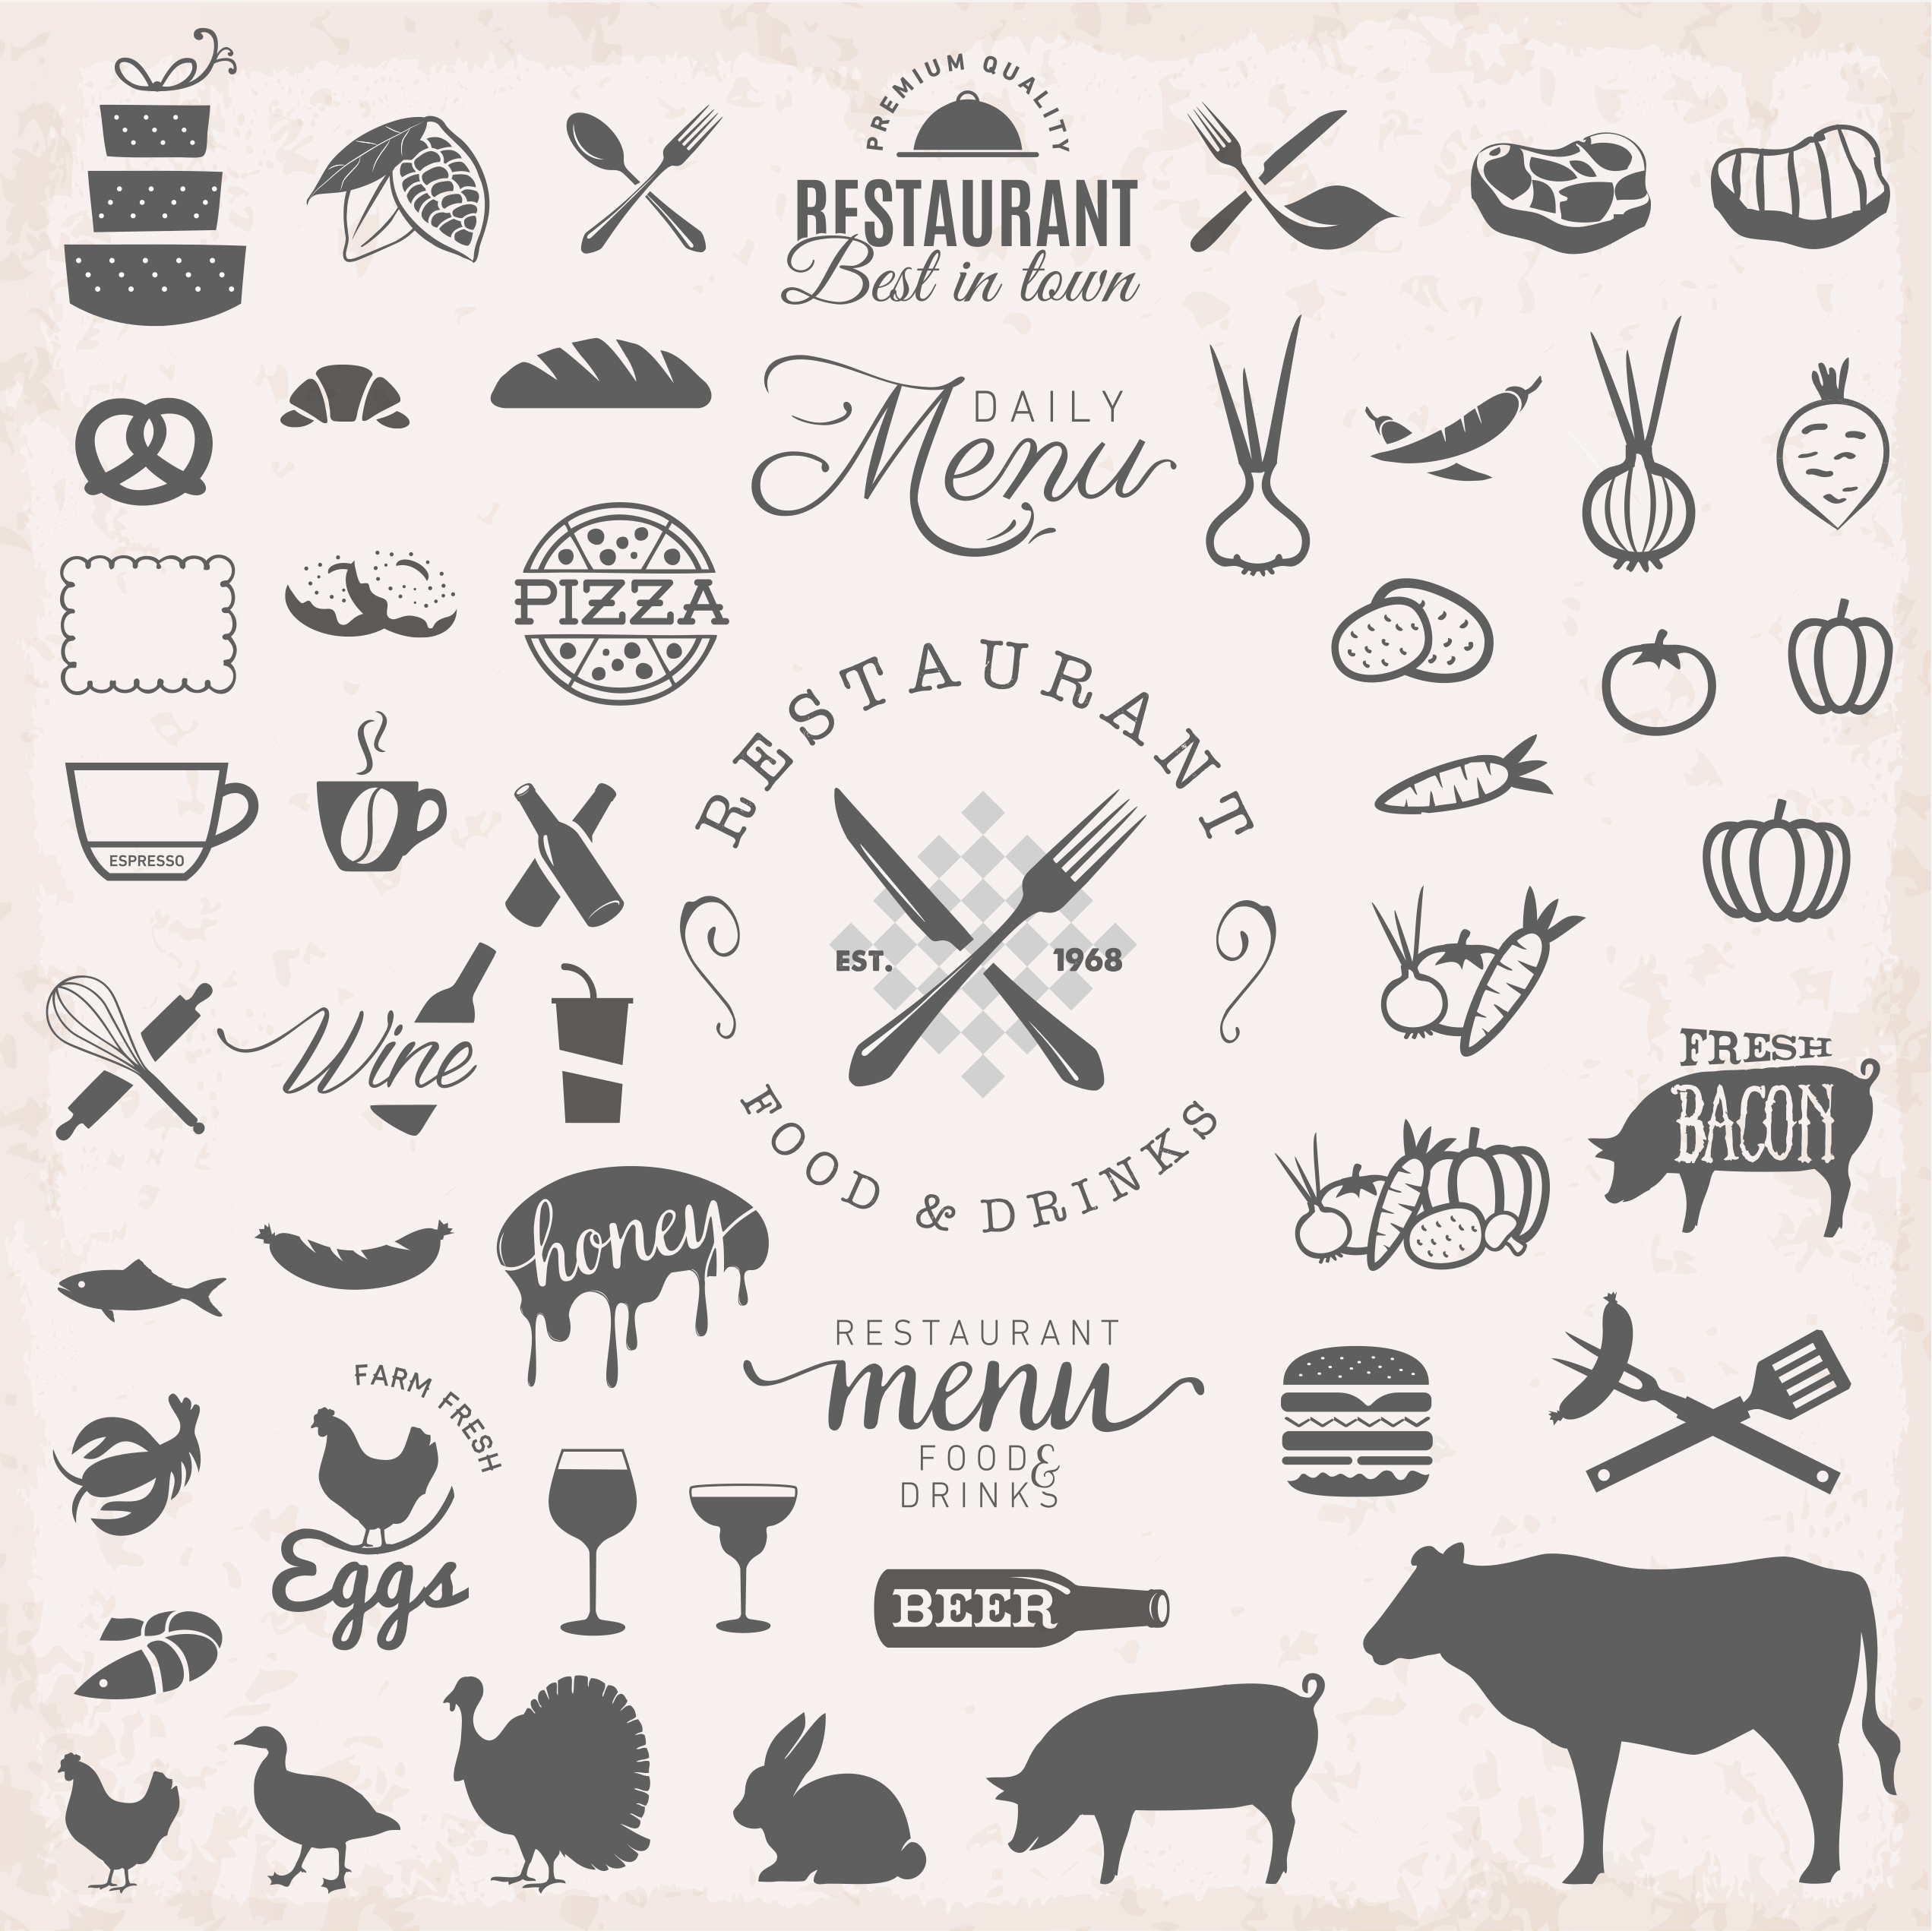 restaurantgraphicdesign